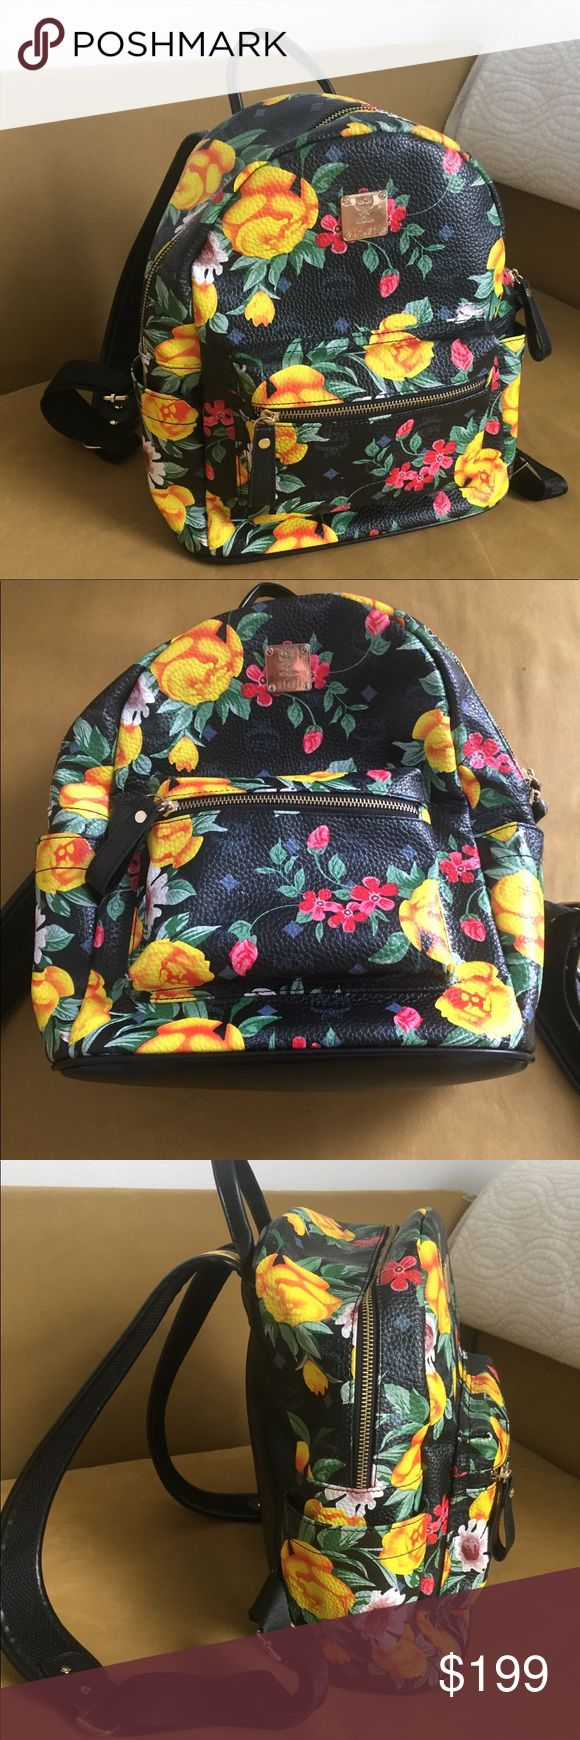 "MCM Floral Backpack Great condition! No tears or holes. All zippers in perfect working order. Bag hang loop shows minor signs of use. This gorgeous bag is a statement piece sure to strike up a conversation. Floral prints stands out bright against black pebble grain leather. Front side has large zip pocket. Inside has several pockets, zip and a divider for wallets. Fits 13"" laptop at an angle and easily fits 11"" laptop. MCM Bags Backpacks"